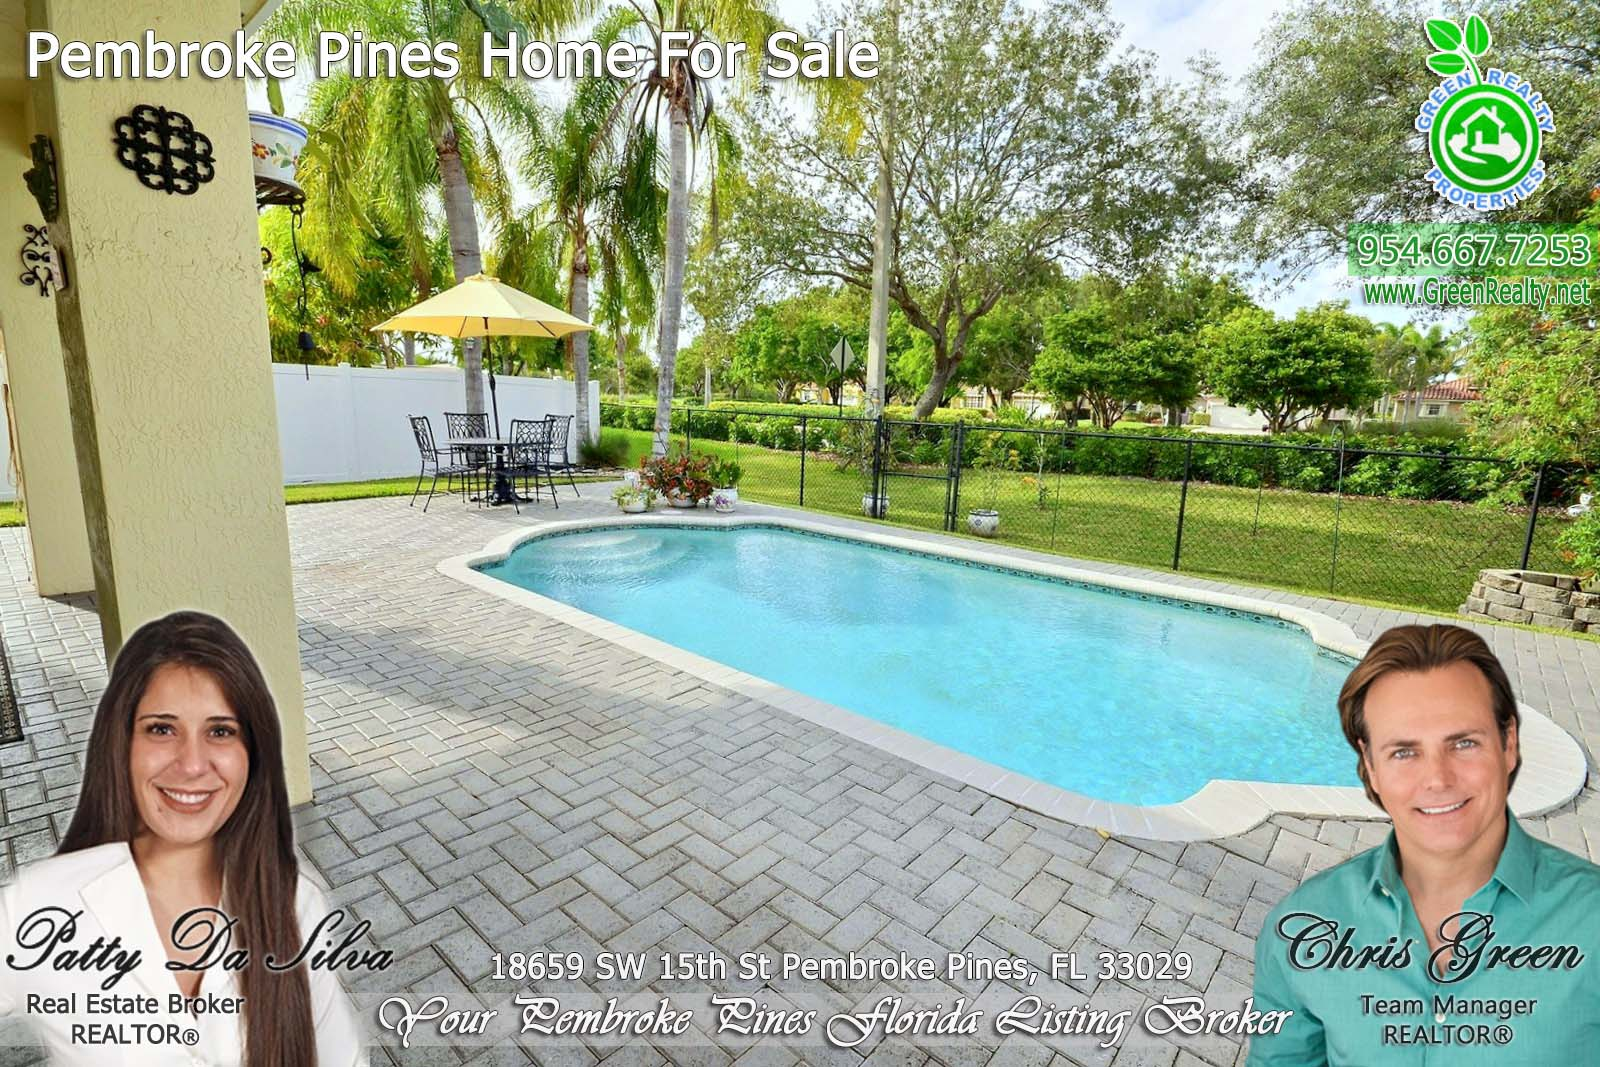 48 Pembroke Pines Homes For Sale (2)